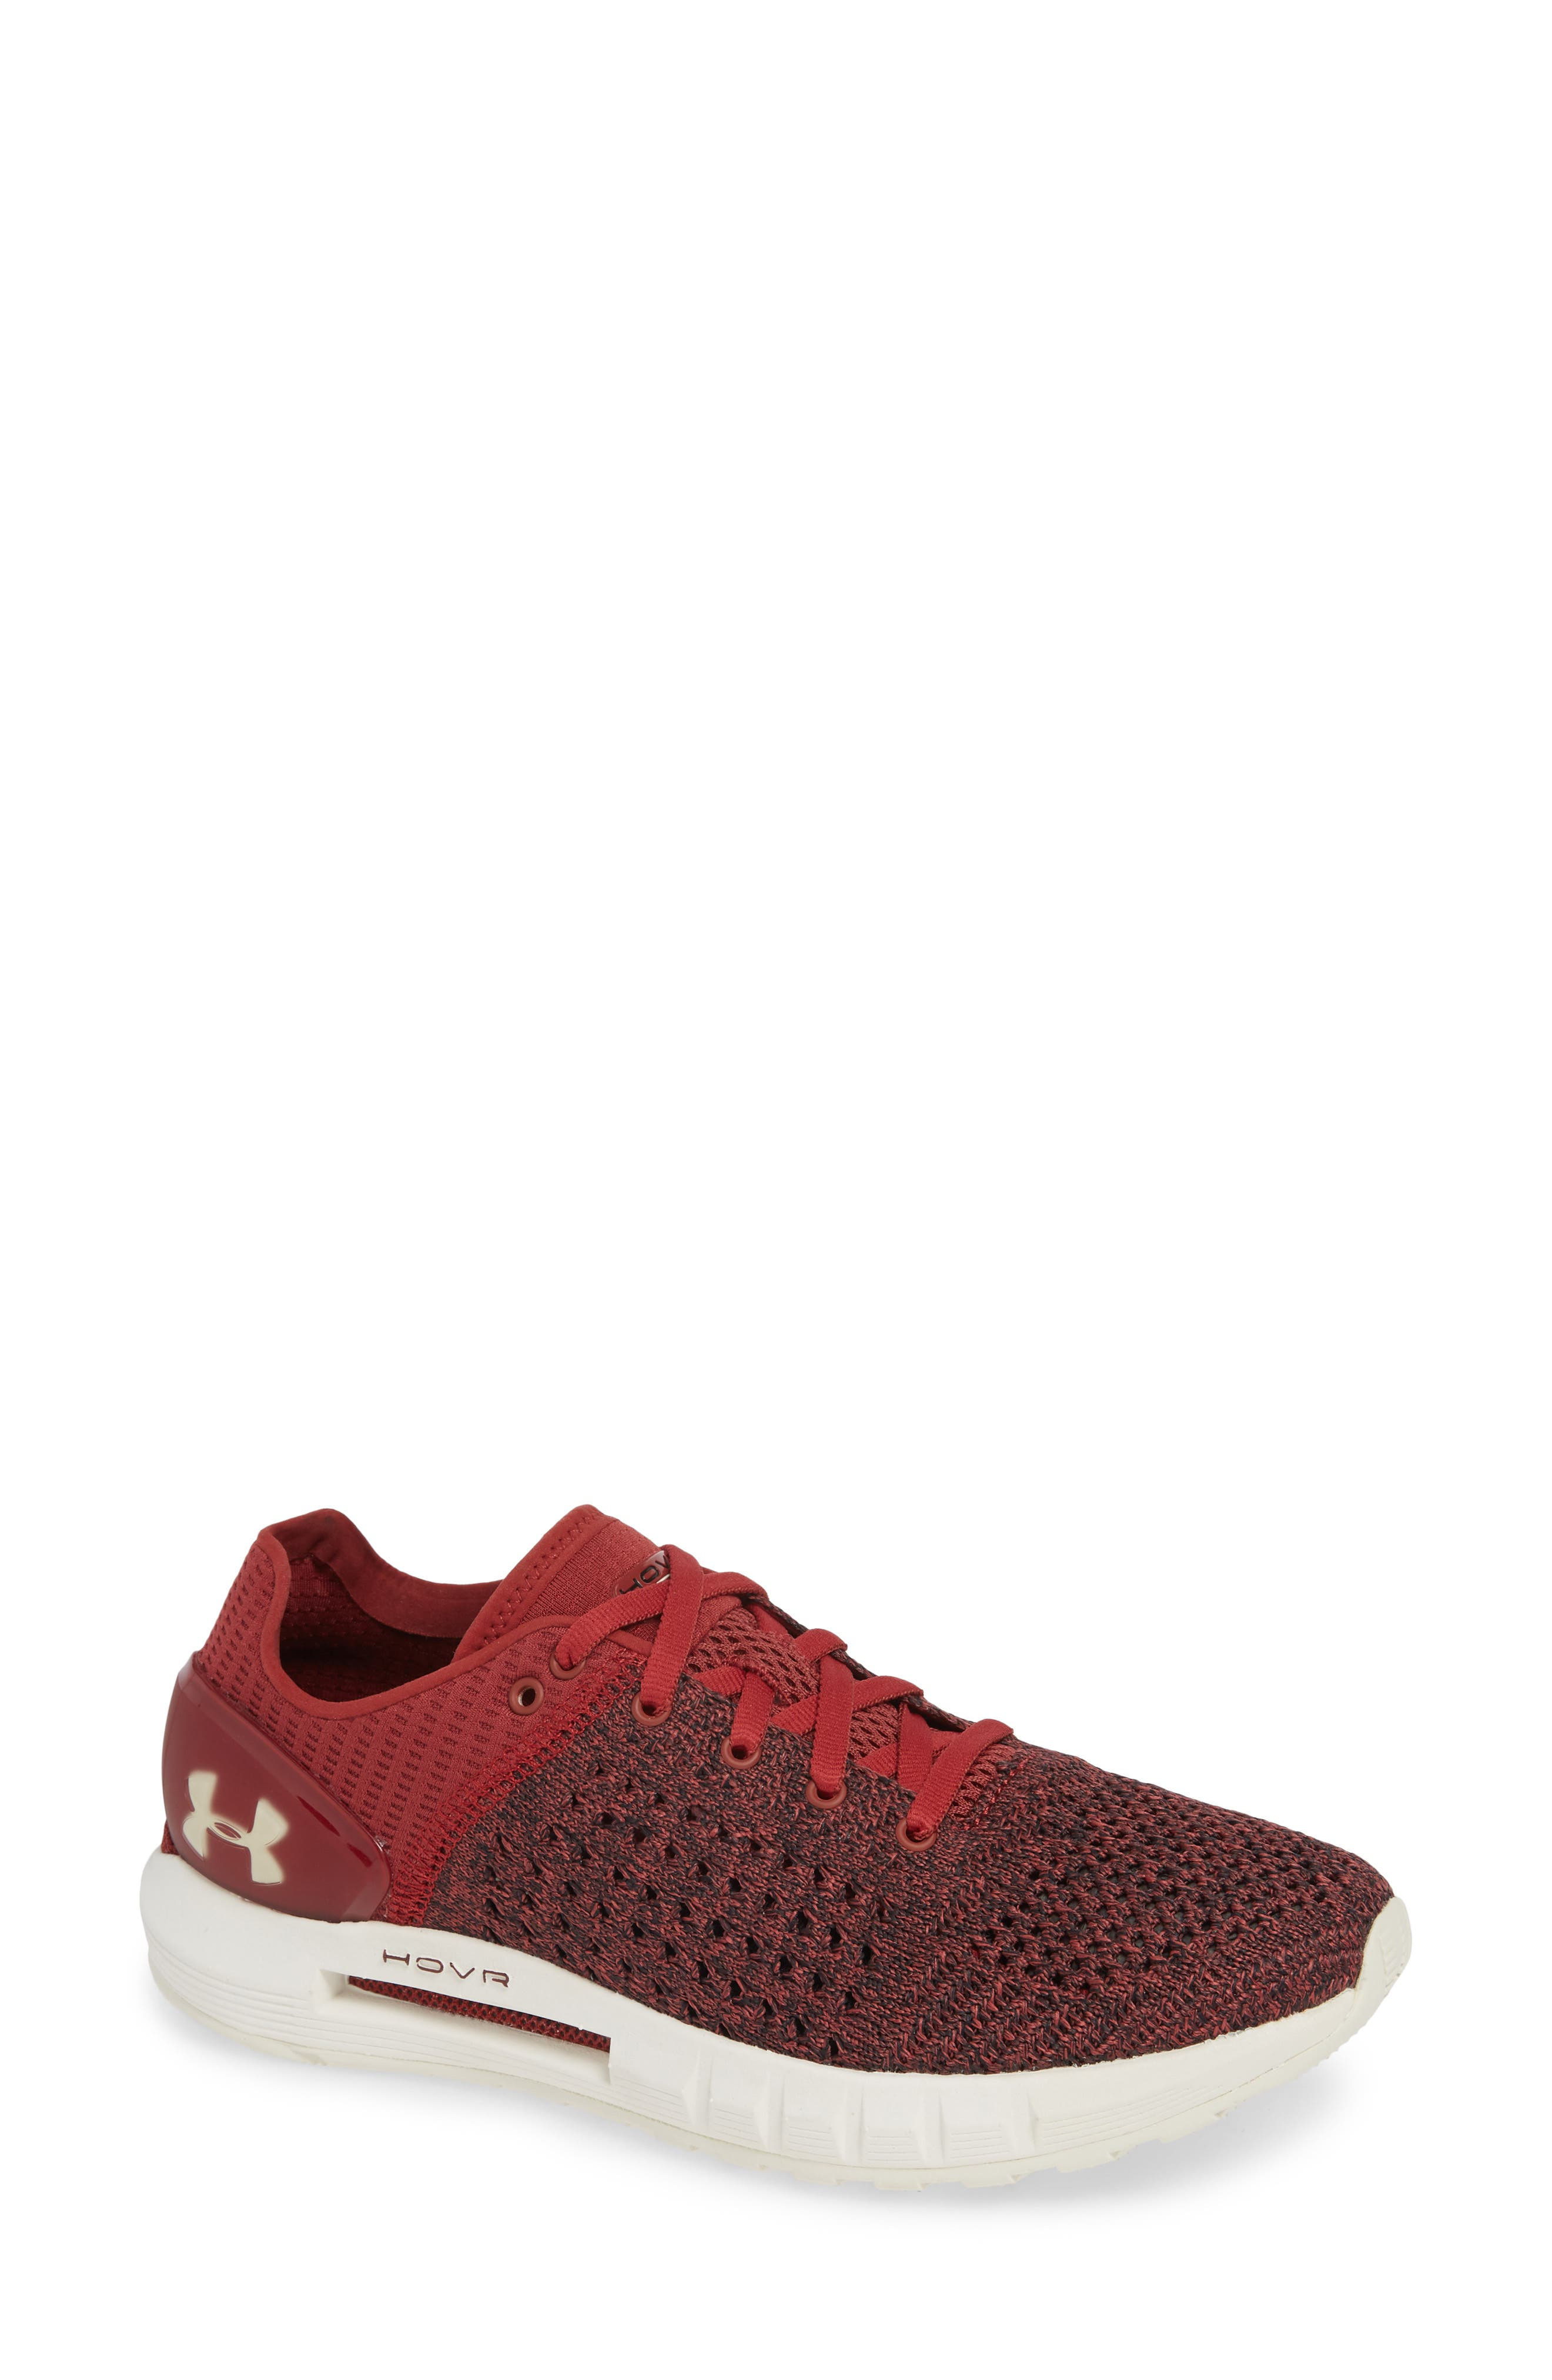 HOVR Sonic NC Running Shoe,                         Main,                         color, BRICK RED/ BLACK/ IVORY